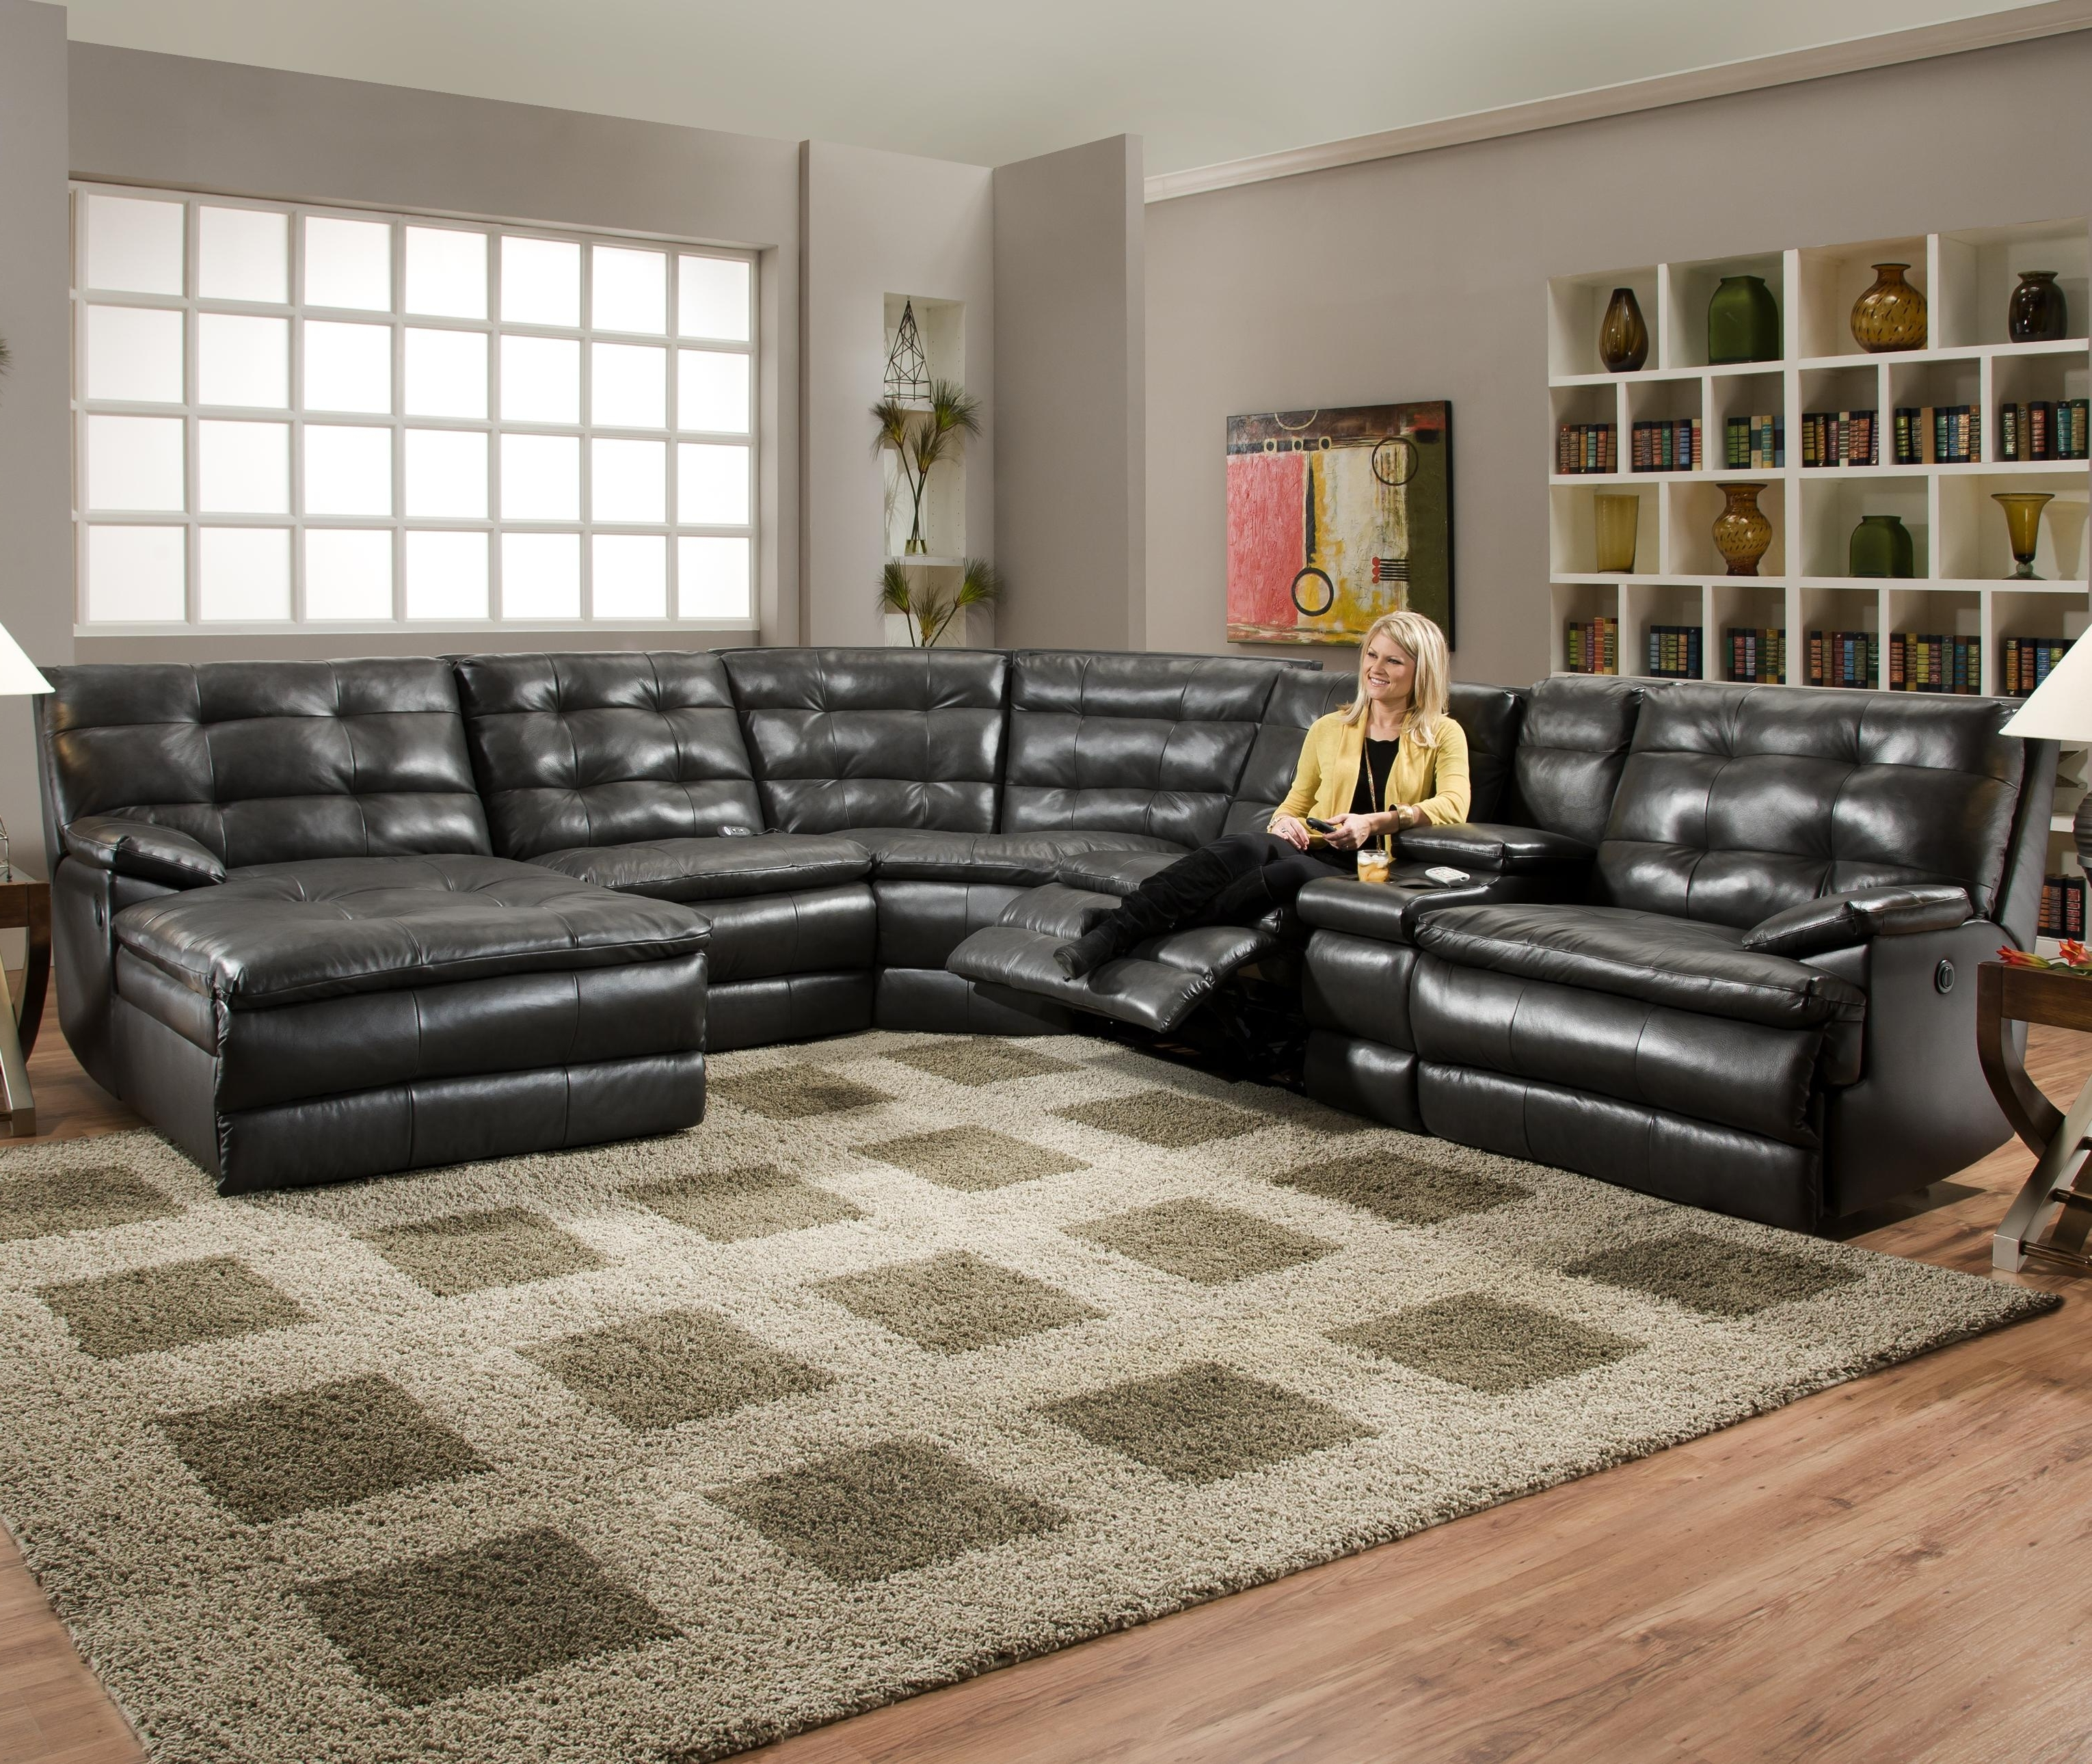 2019 Most Comfortable Sofa Reviews Oversized Deep Couch U Shaped Sofa Pertaining To Huge U Shaped Sectionals (View 2 of 20)